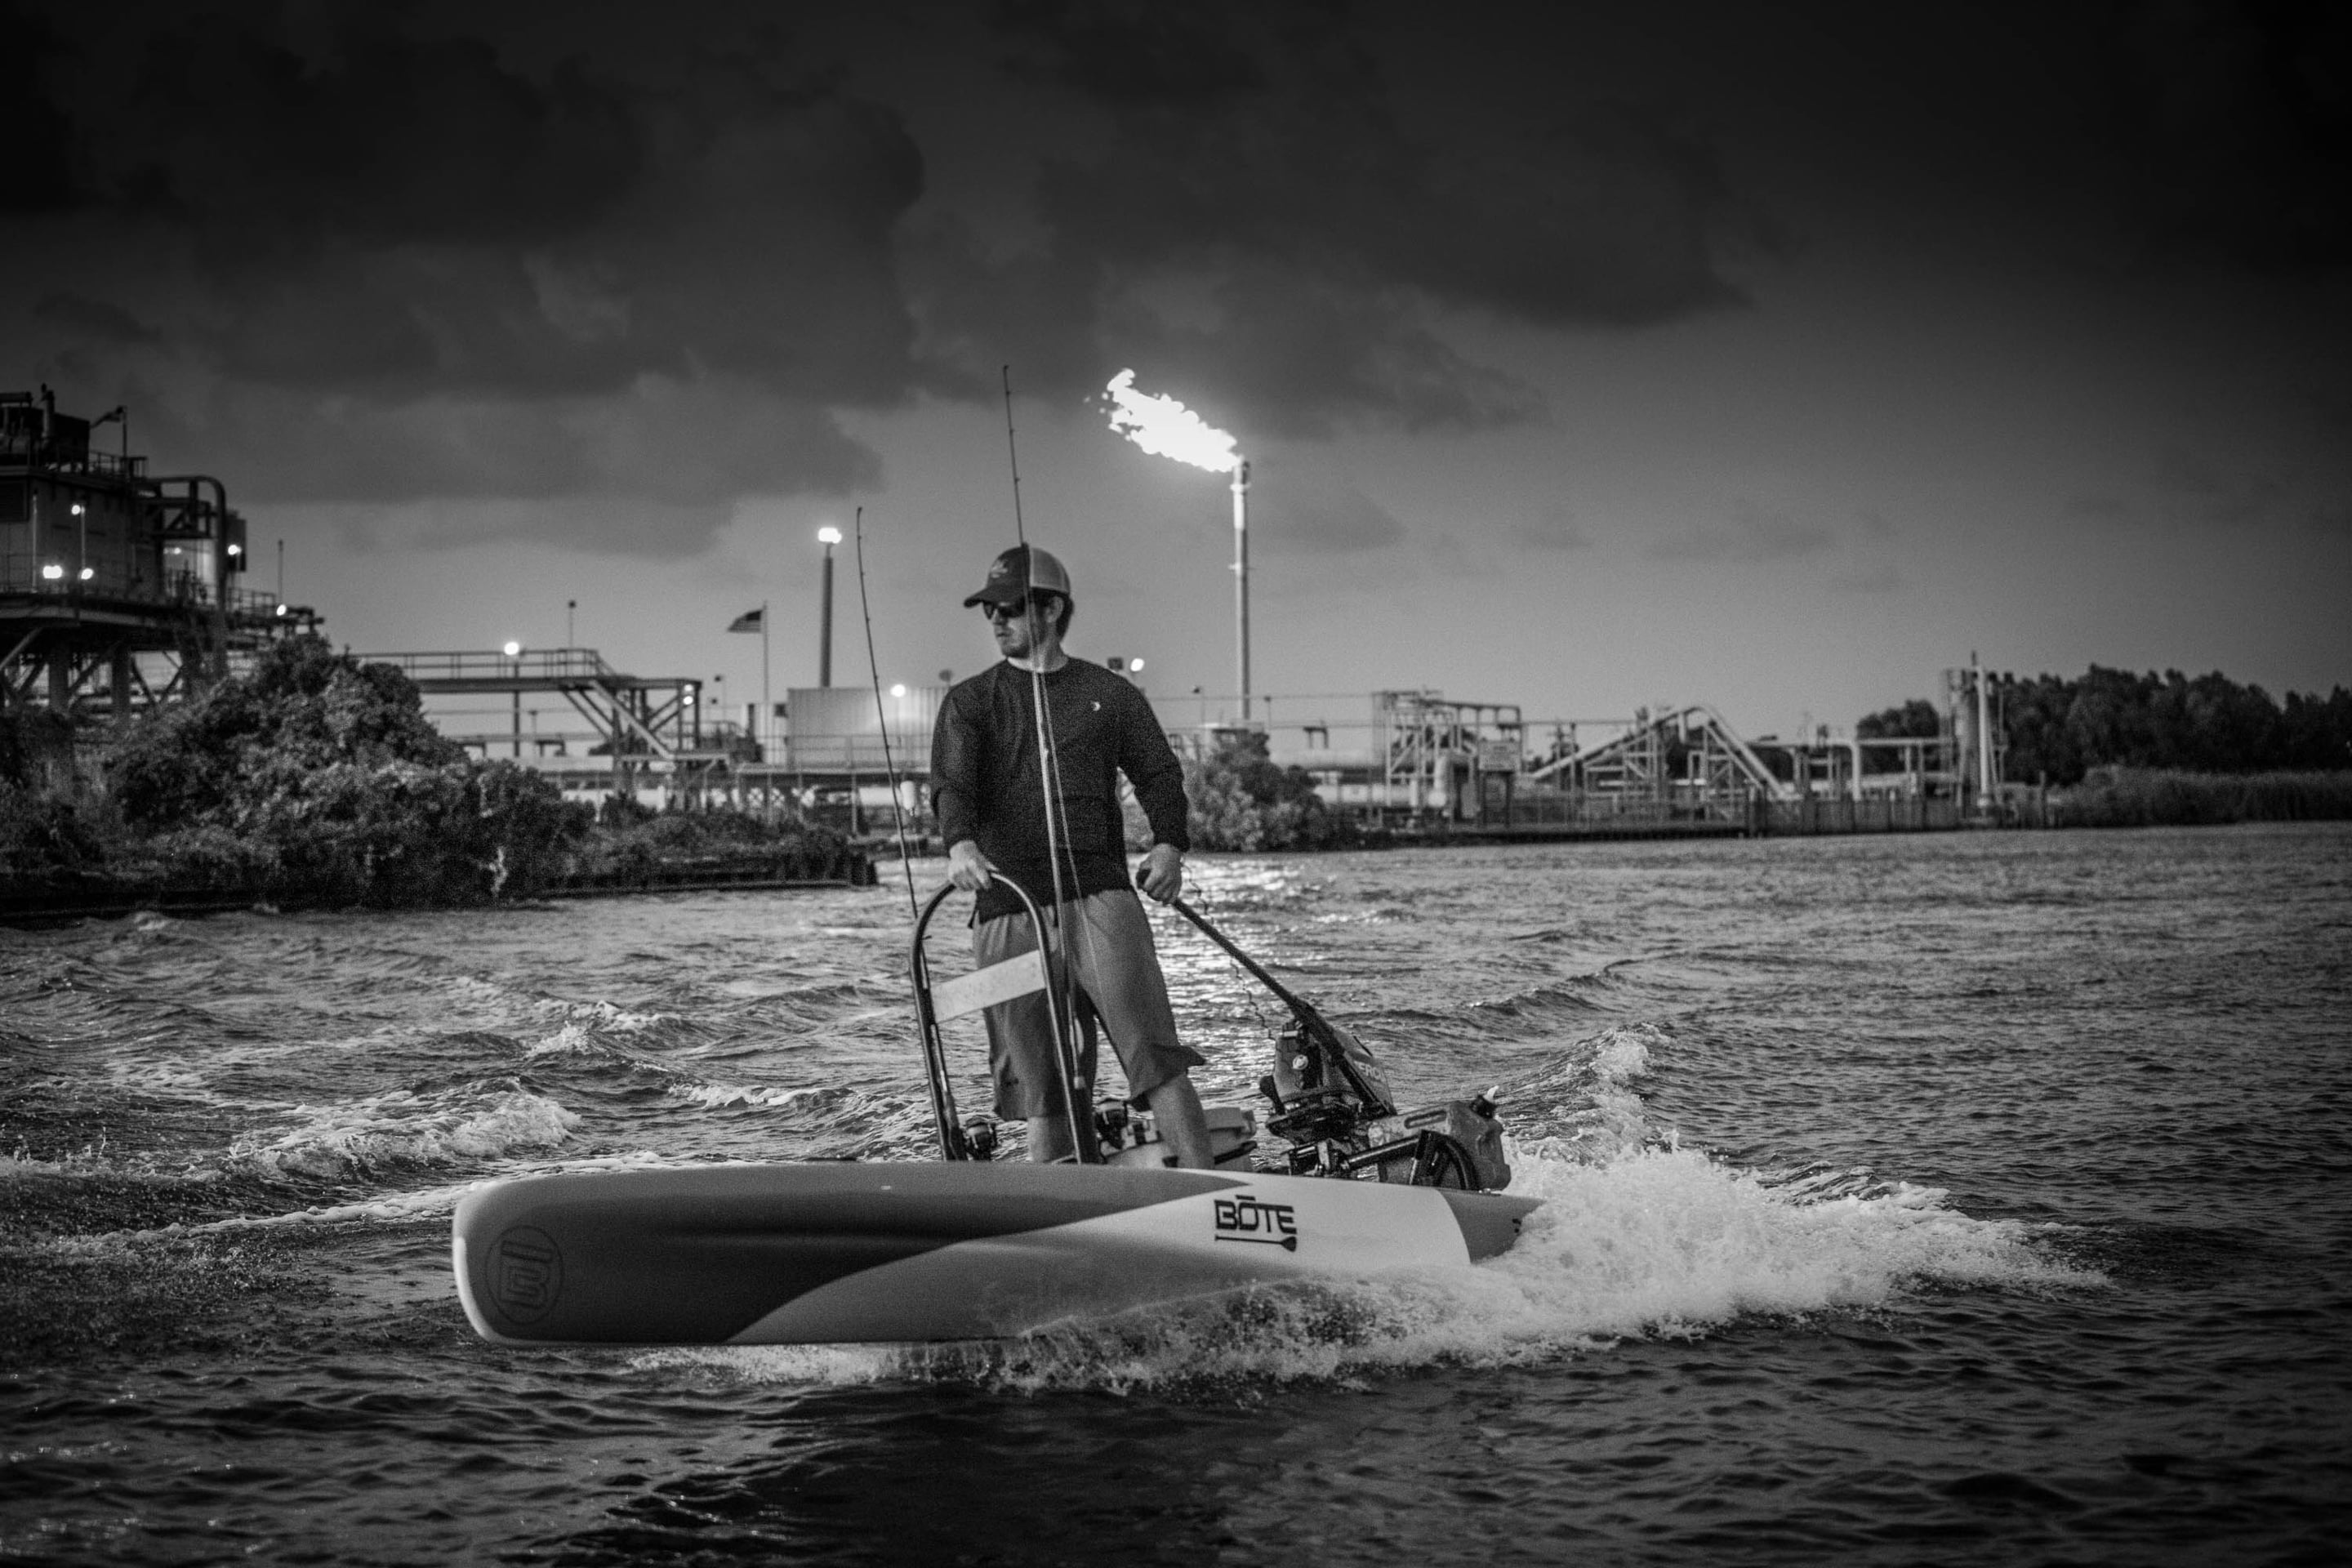 Brown Frenette taking his BOTE Rover microskiff out on the Venice, Louisiana waters in front of refineries